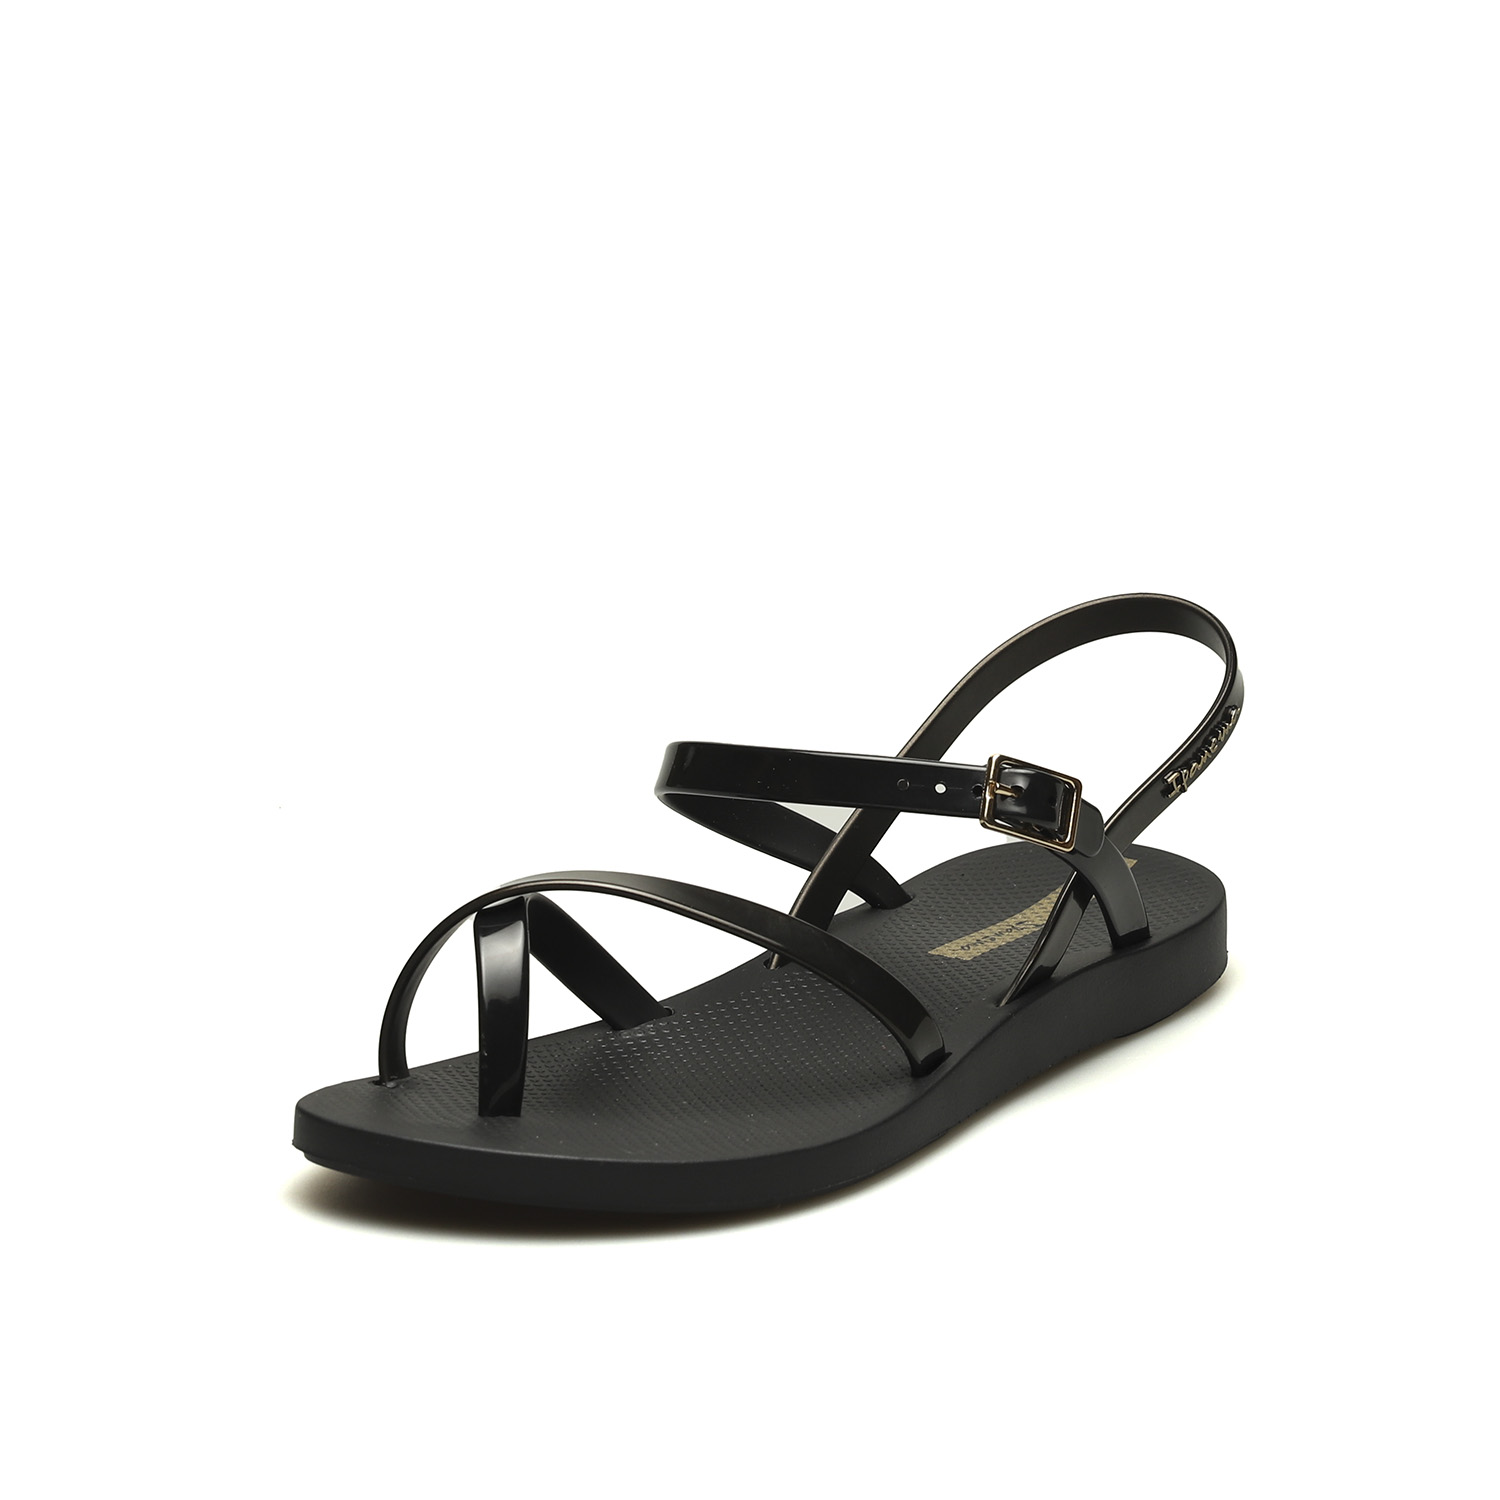 IPANEMA ANATOMIC SANDALS BLACK